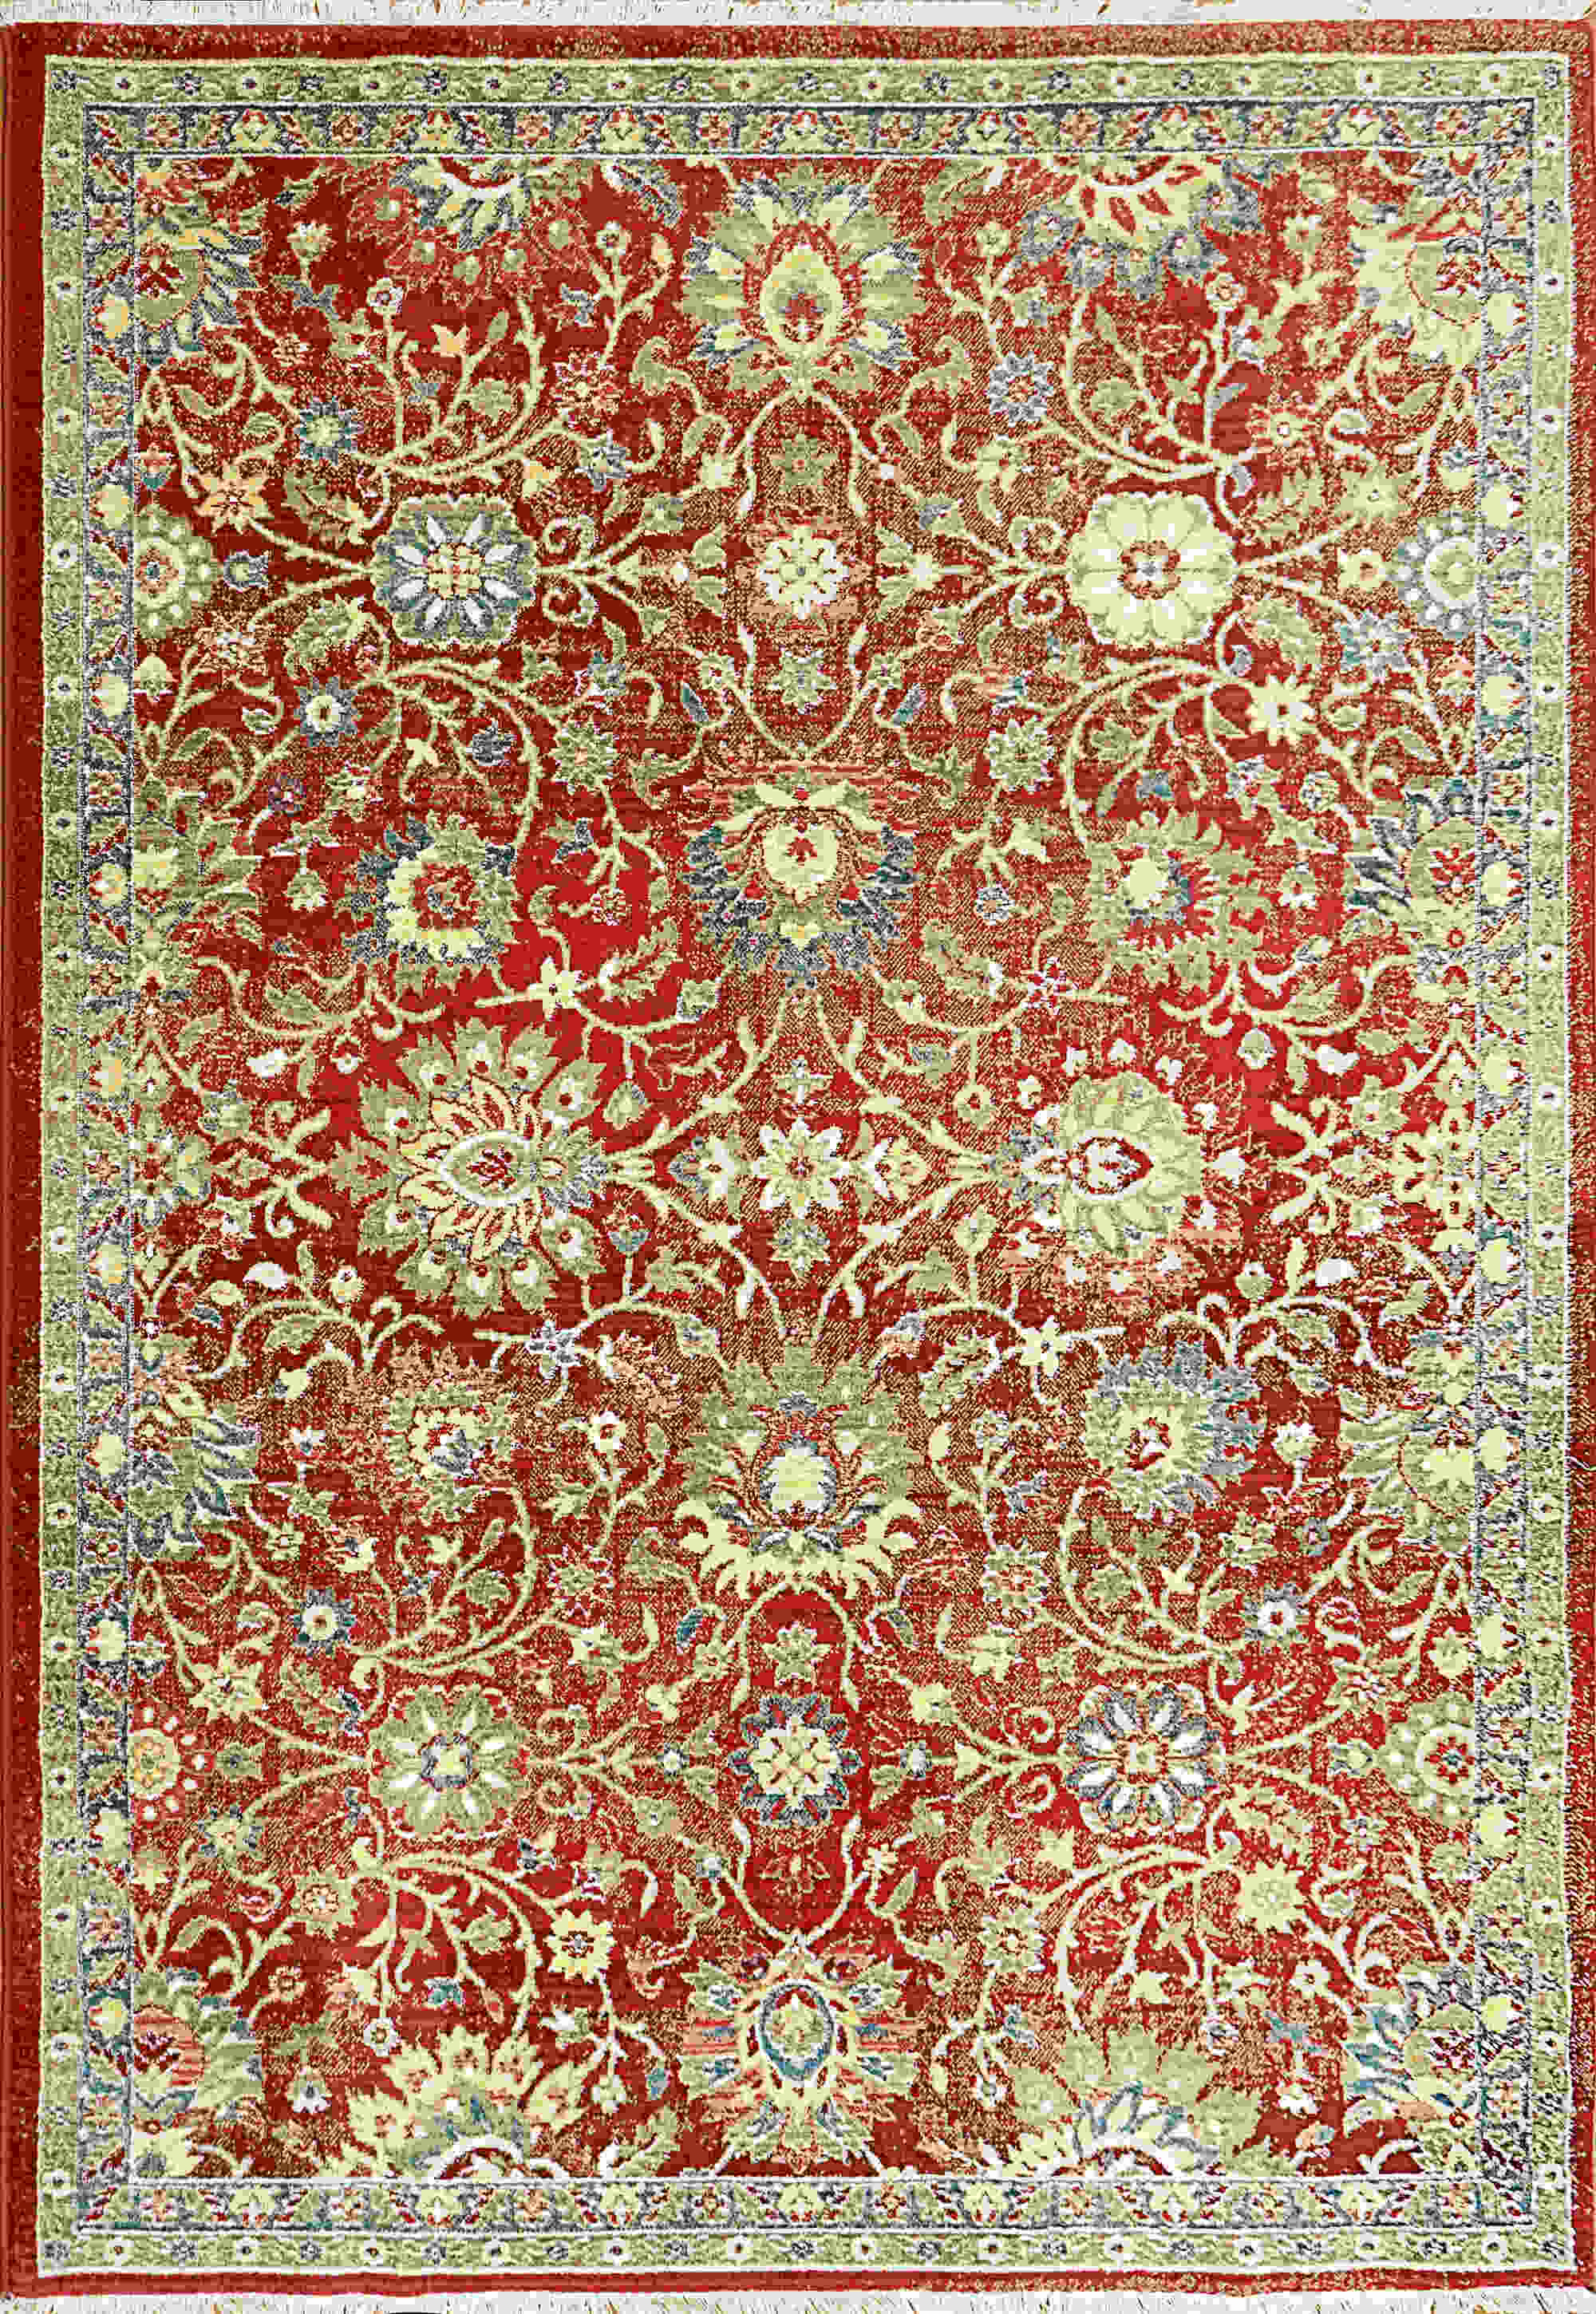 Dynamic Juno Red Transitional Rug 6883-300